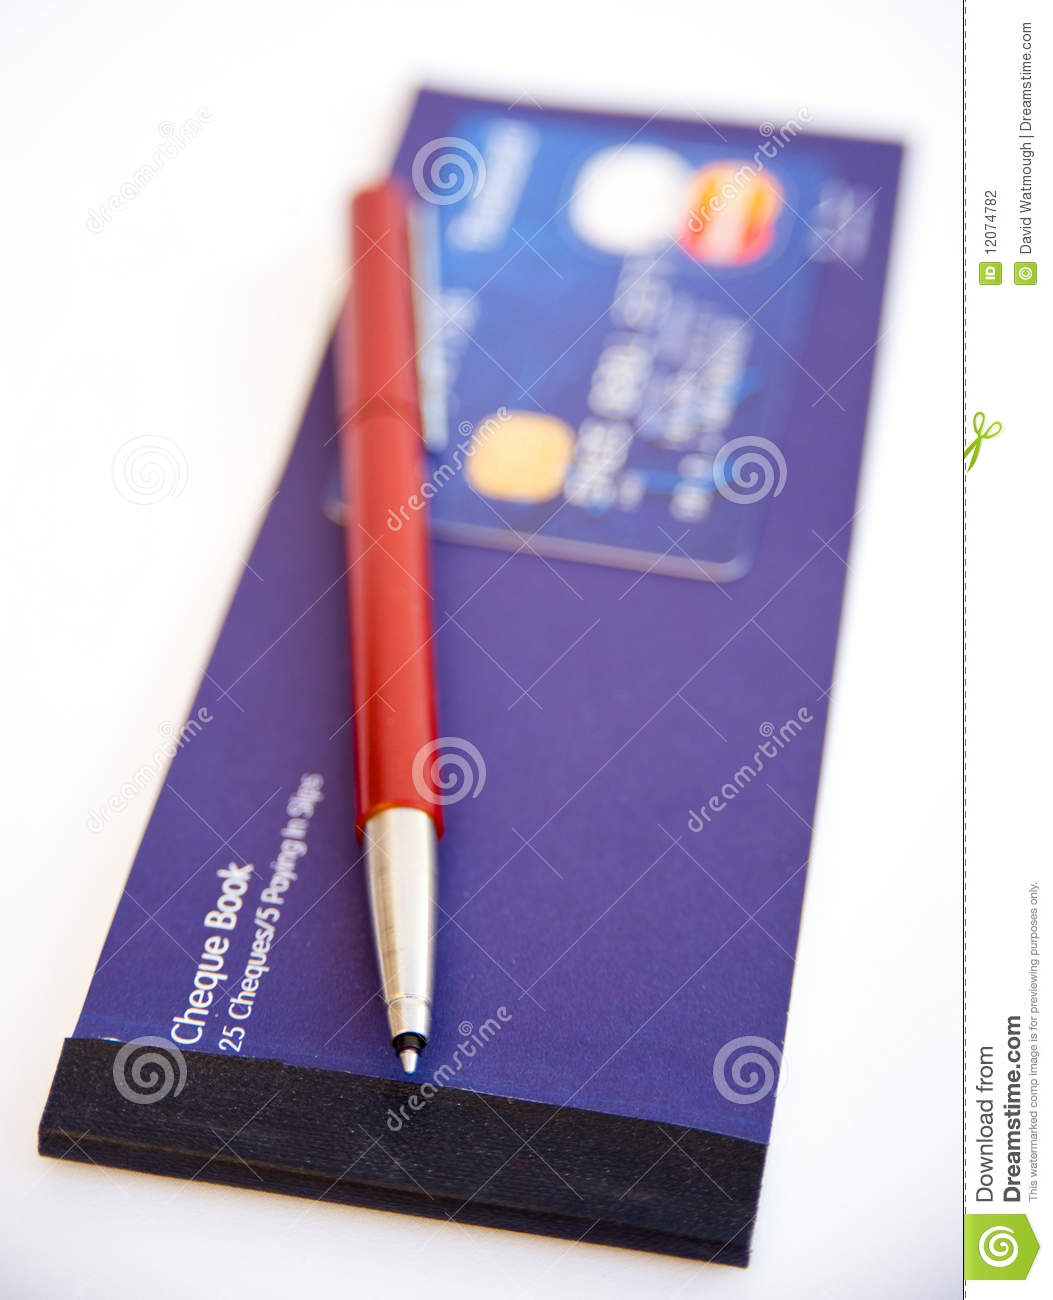 Credit card, pen and cheque book.